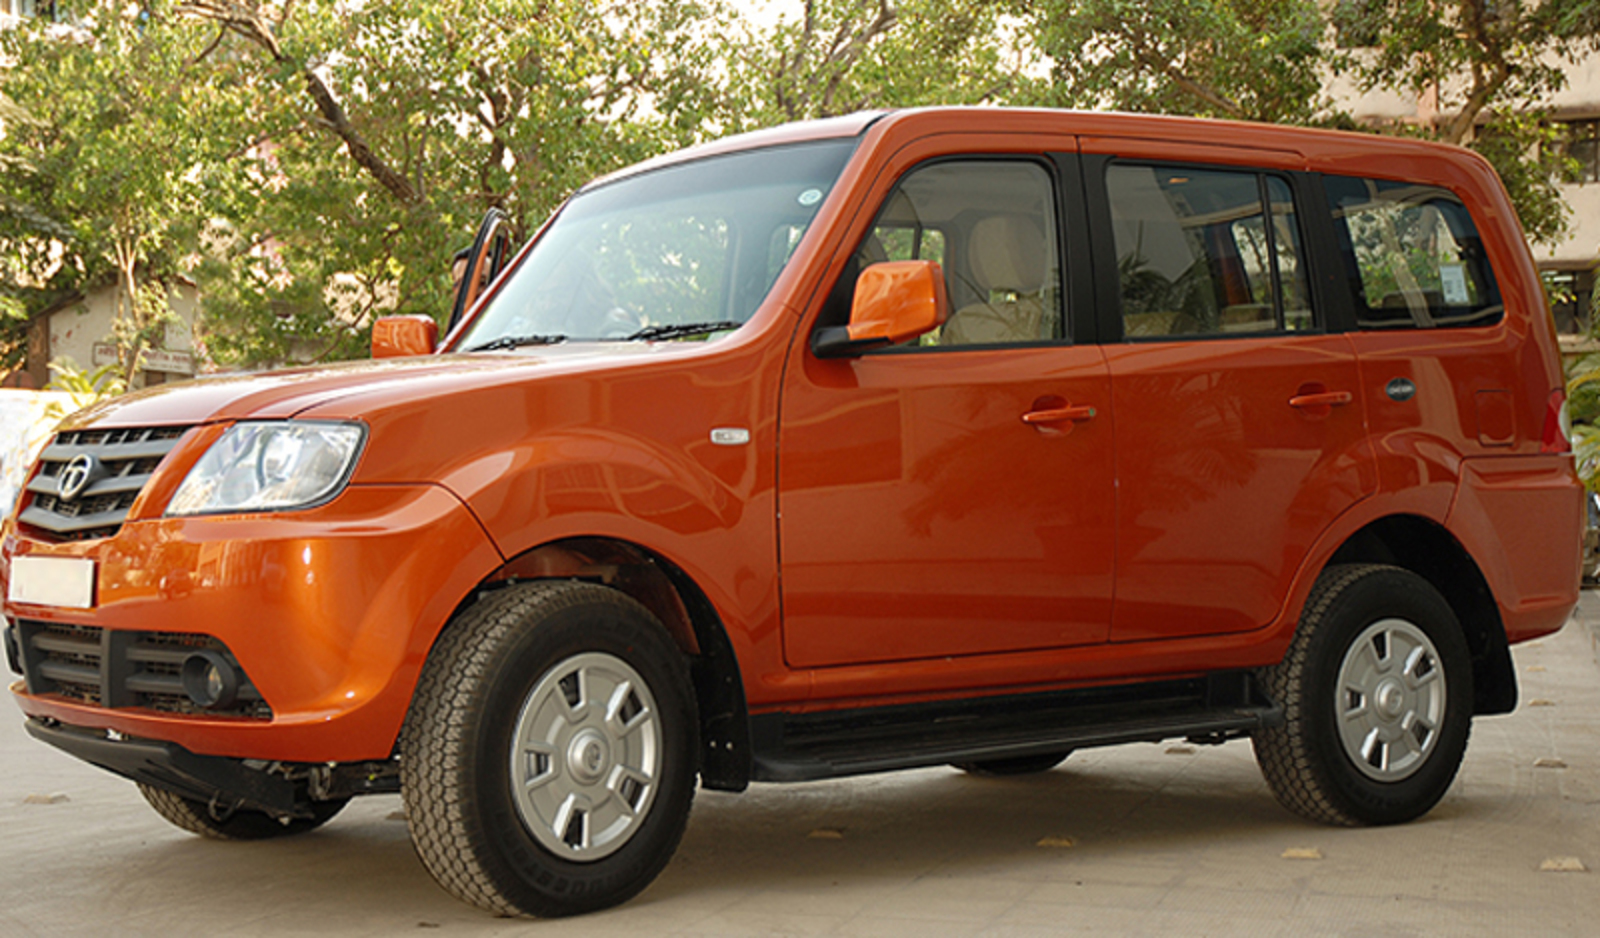 Tata Sumo EX 20 TDi Photo Gallery: Photo #05 out of 11, Image Size ...